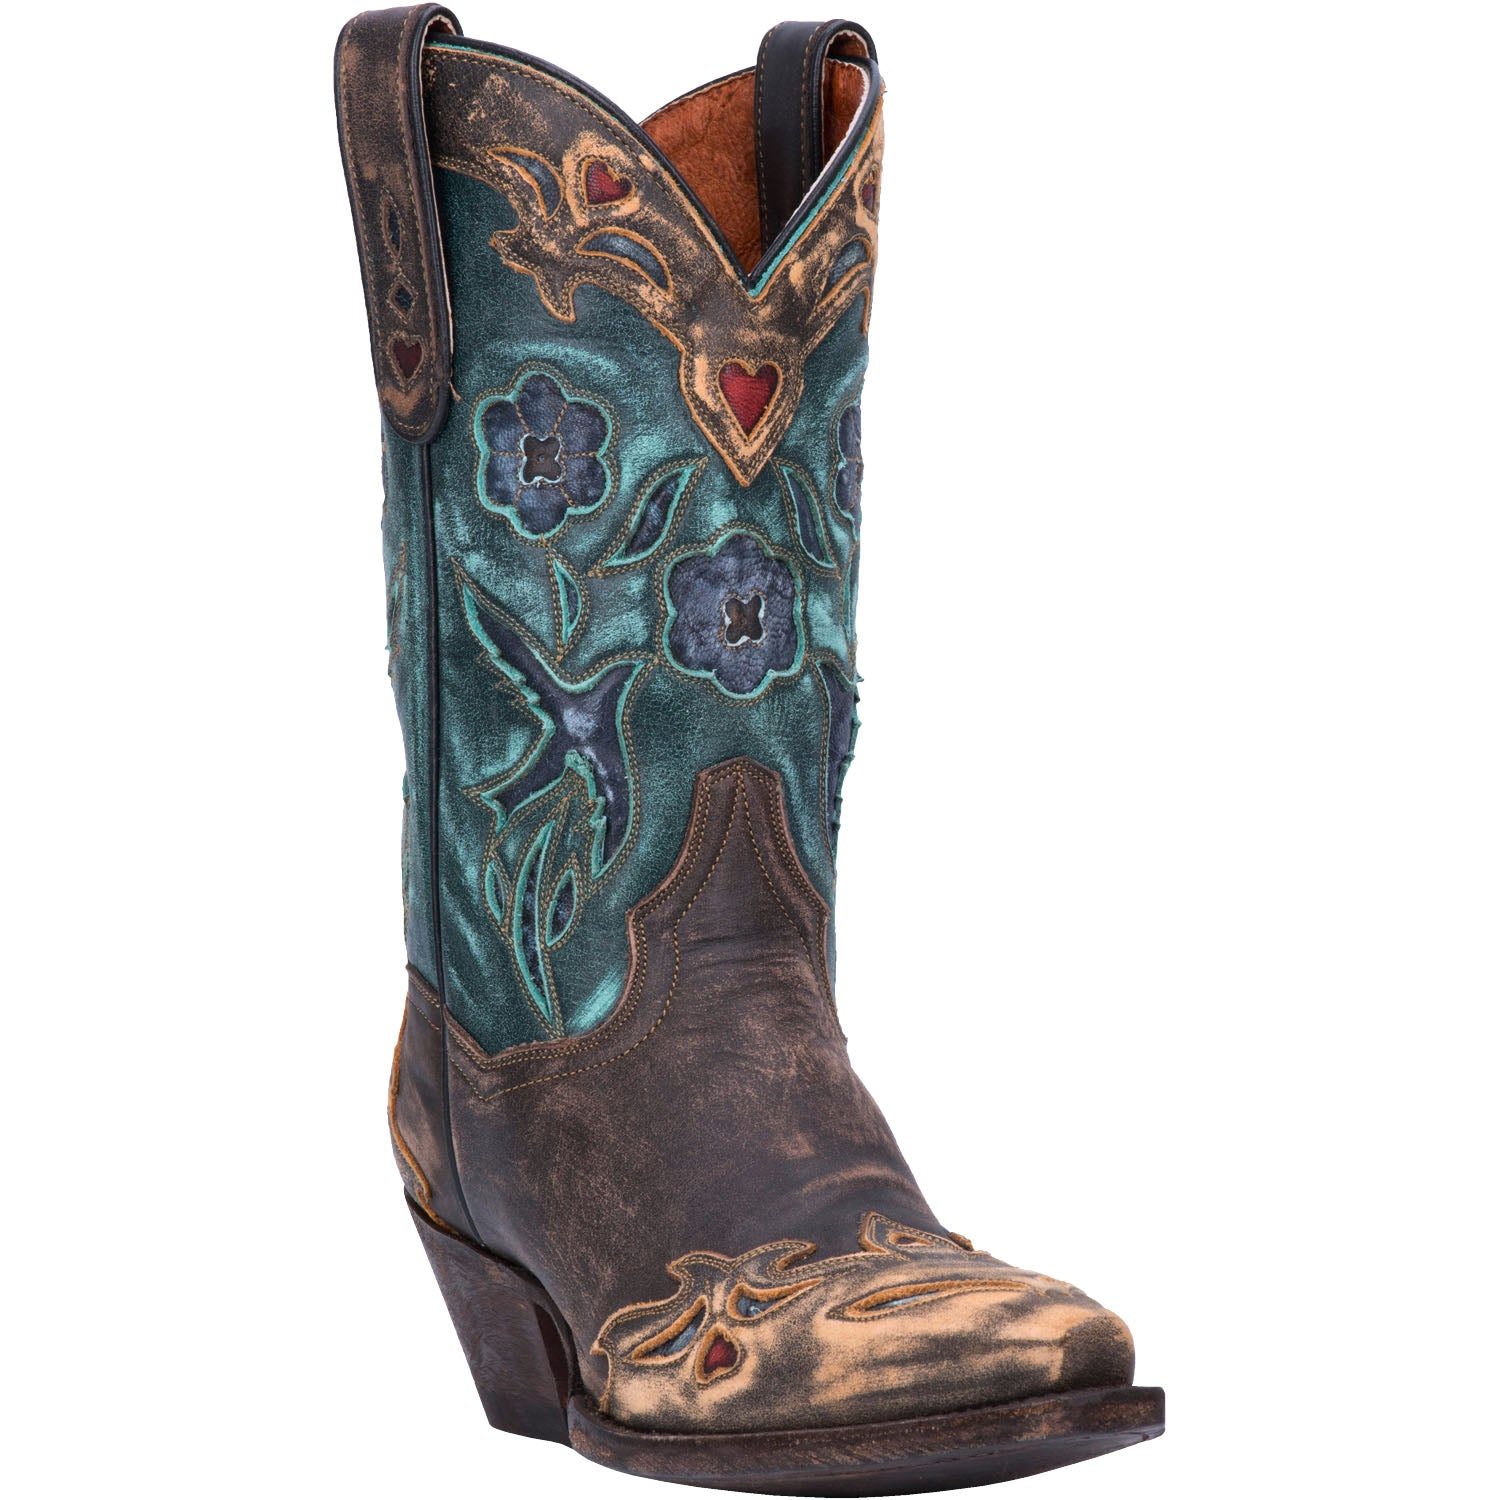 6520a0e1192 VINTAGE BLUEBIRD LEATHER BOOT.  297.00. WOMEN S